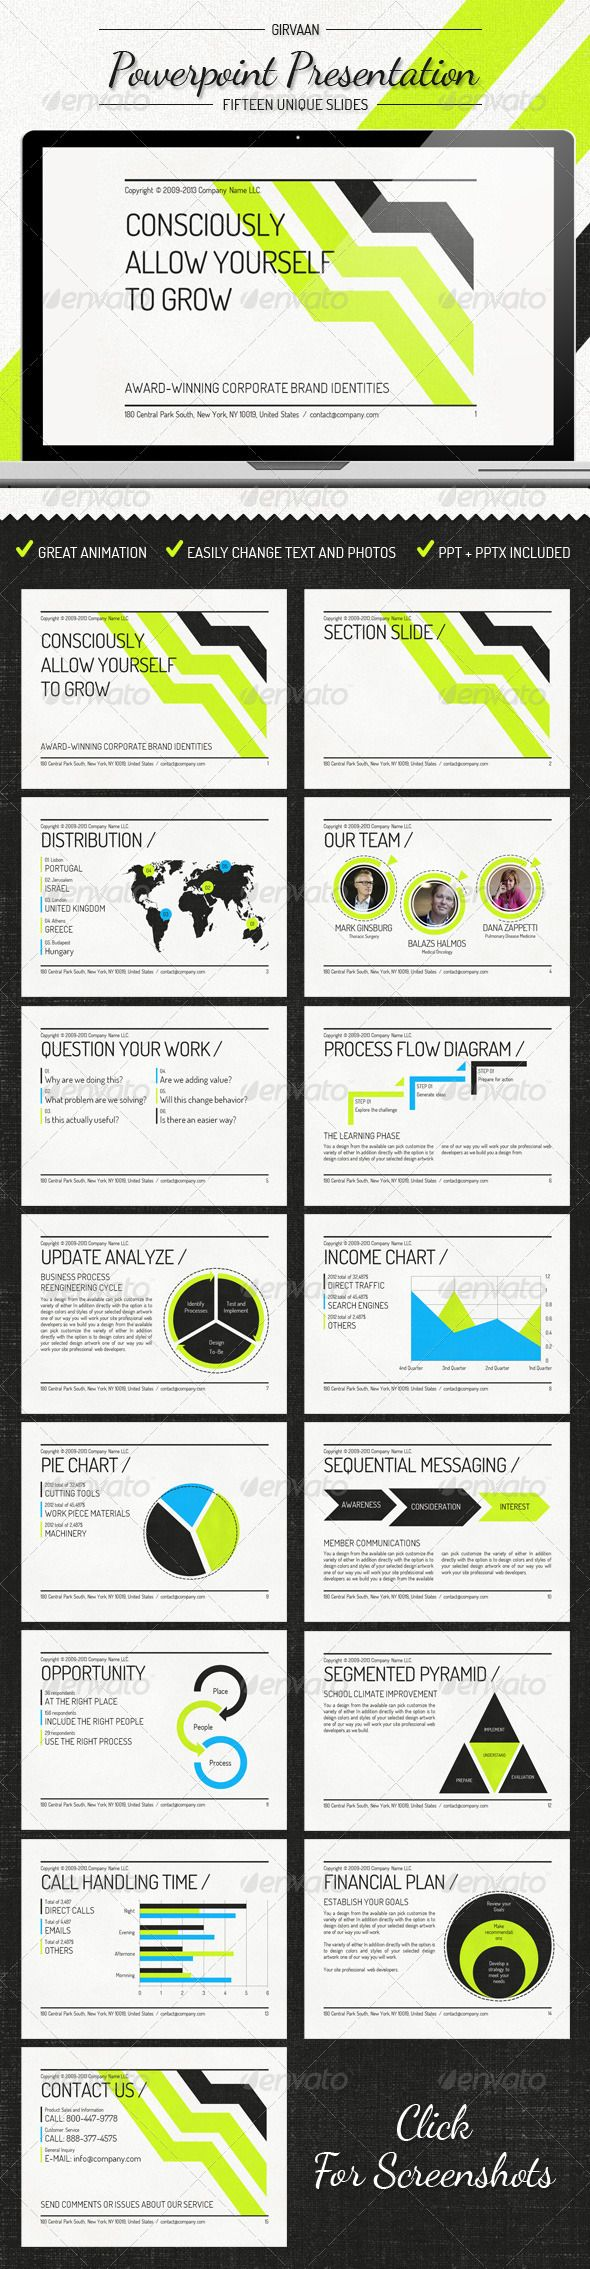 Girvann - Power Point Presentation - GraphicRiver Item for Sale